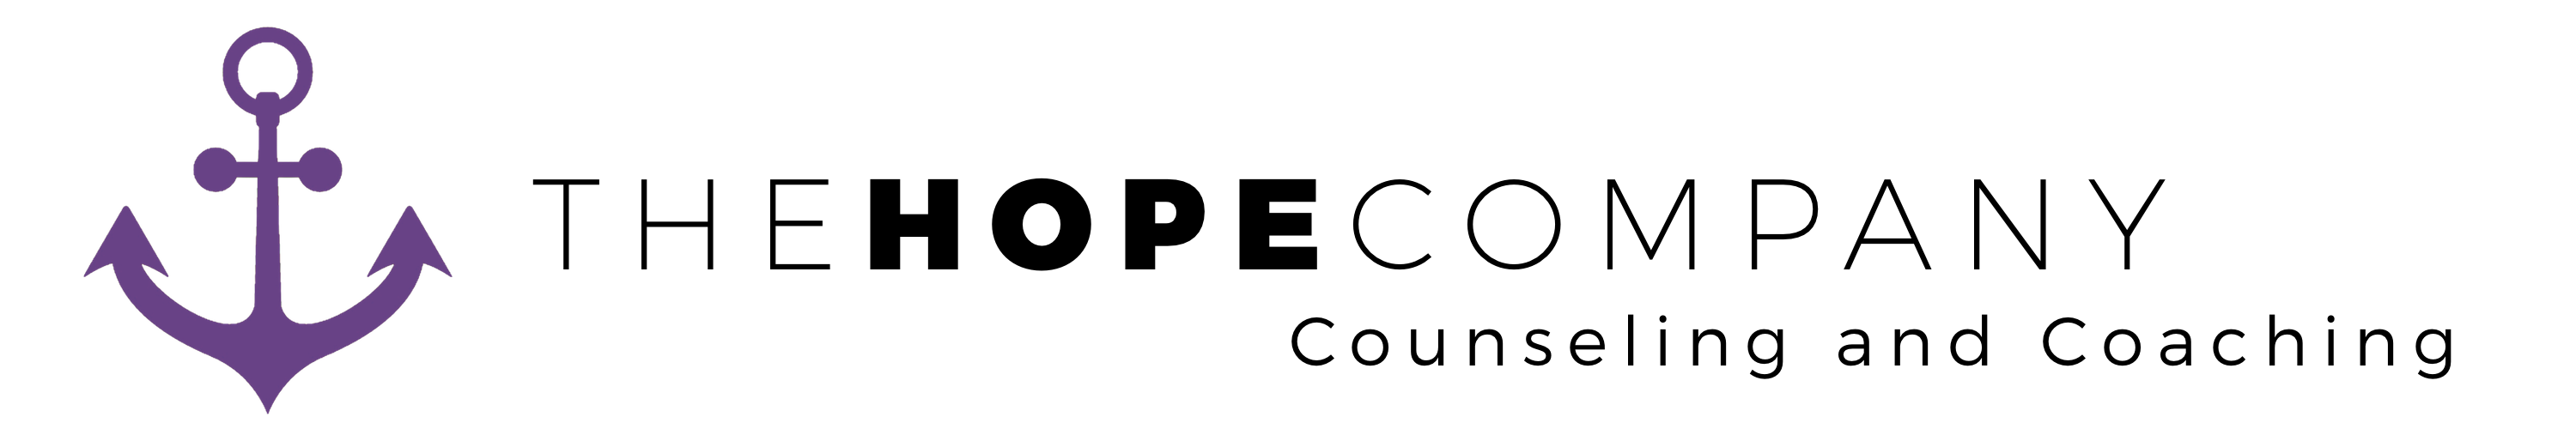 The Hope Company, LLC